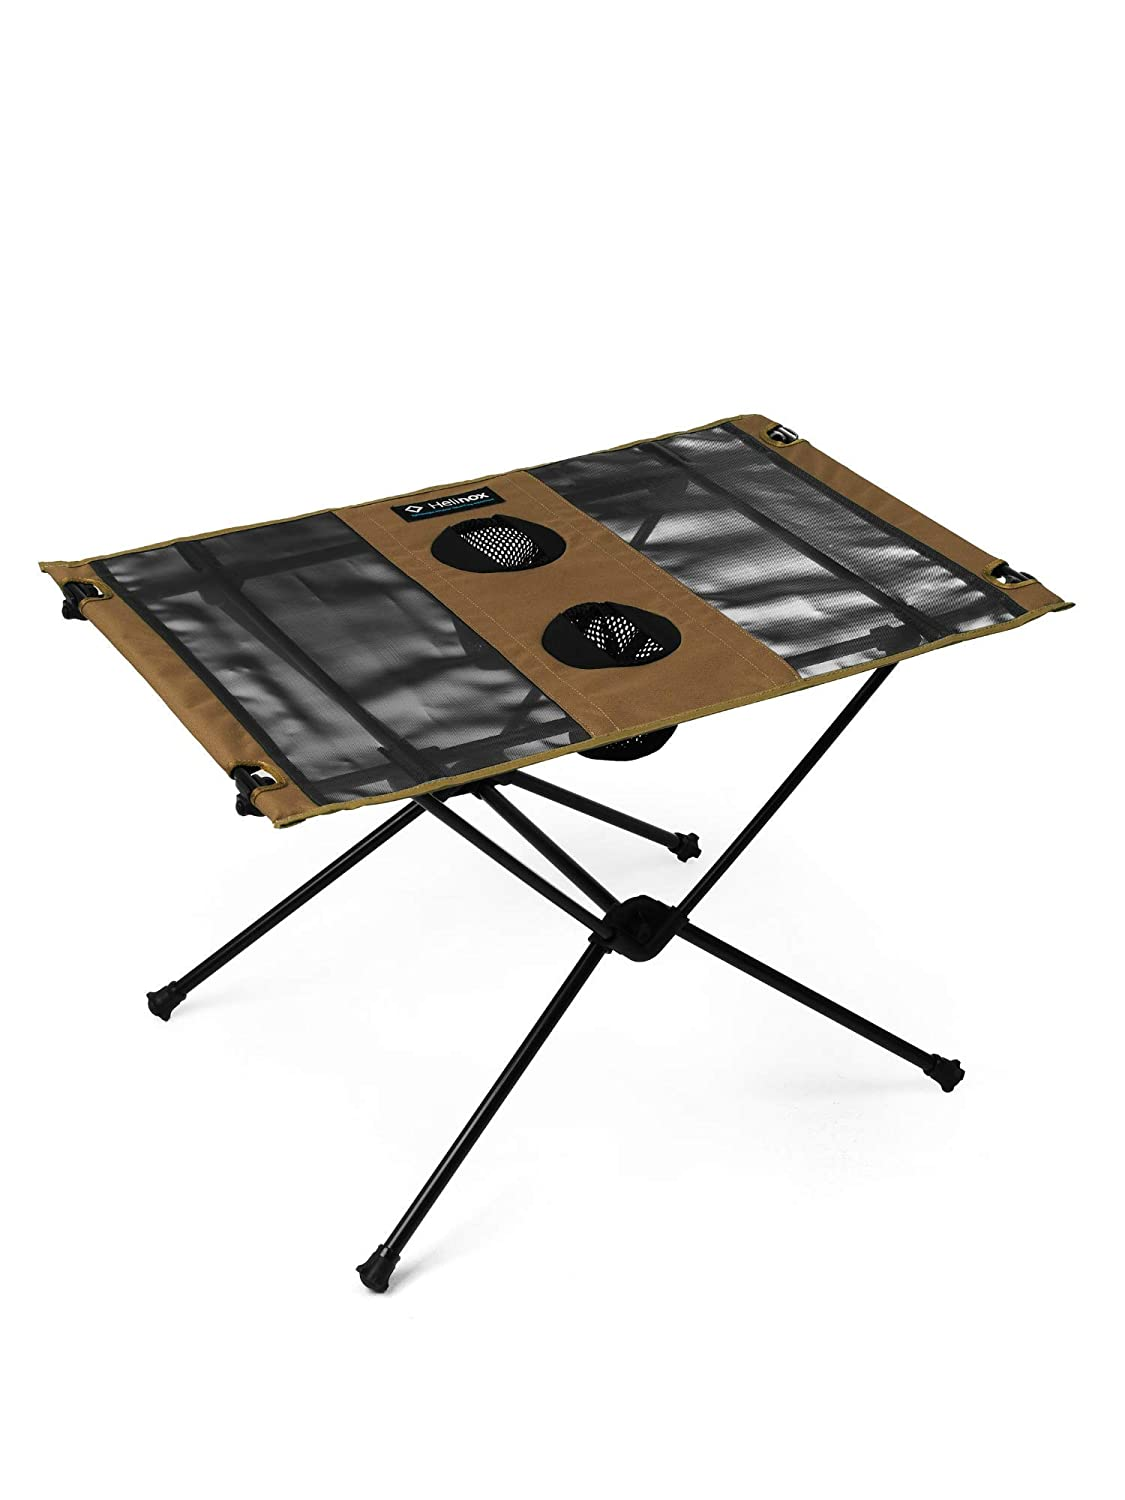 Holds Up to 50kg Collapsable Outdoor Camping Table Helinox Table One Lightweight Perfect for Hiking Trips Portable